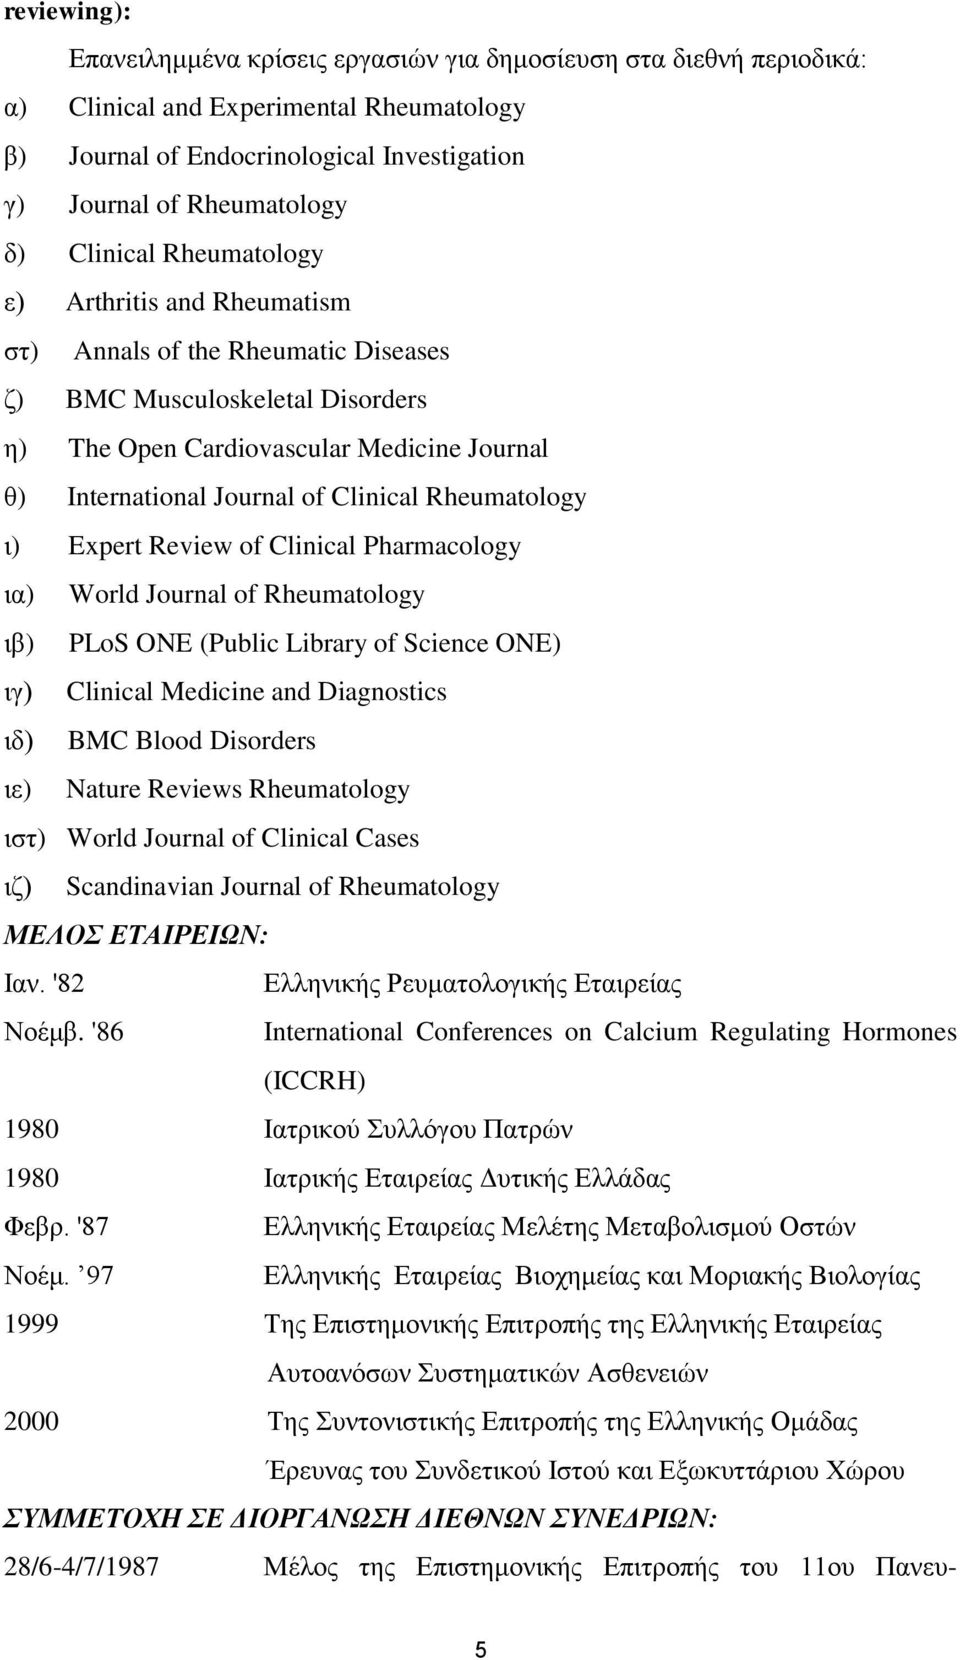 Clinical Rheumatology ι) Expert Review of Clinical Pharmacology ια) World Journal of Rheumatology ιβ) PLoS ONE (Public Library of Science ONE) ιγ) Clinical Medicine and Diagnostics ιδ) BMC Blood